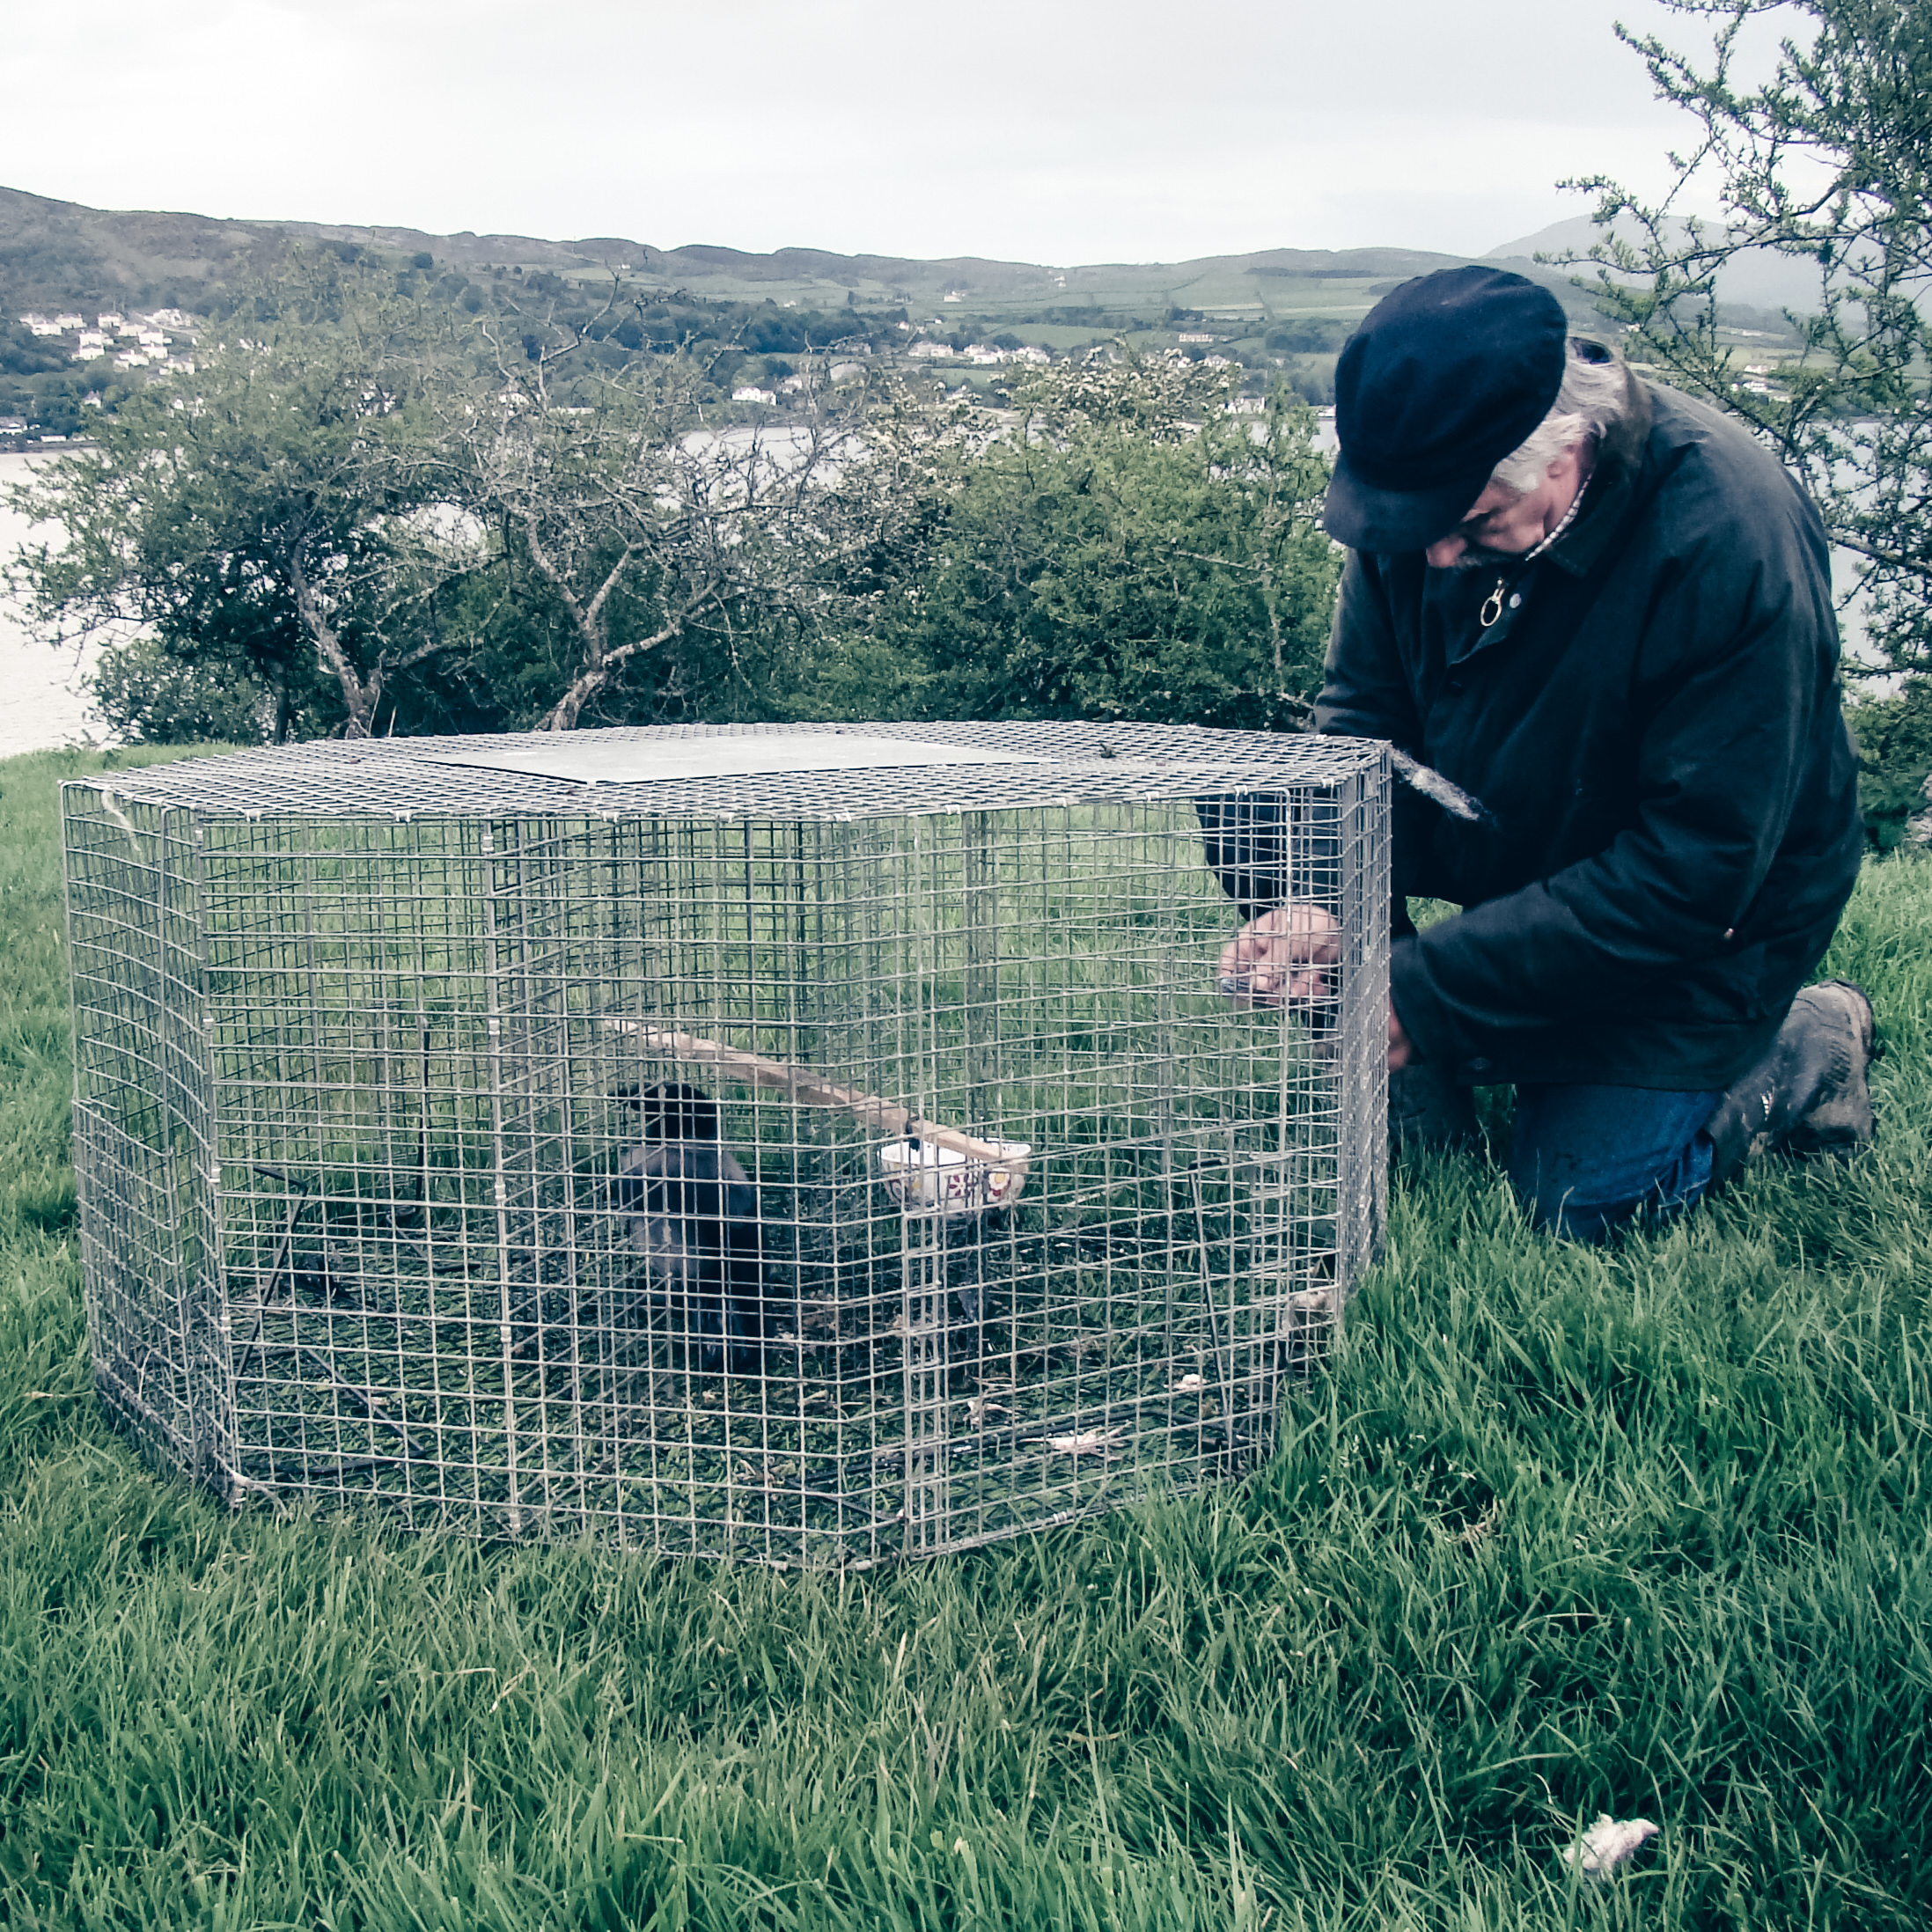 Setting a larson trap with Hooded crow-2.jpg